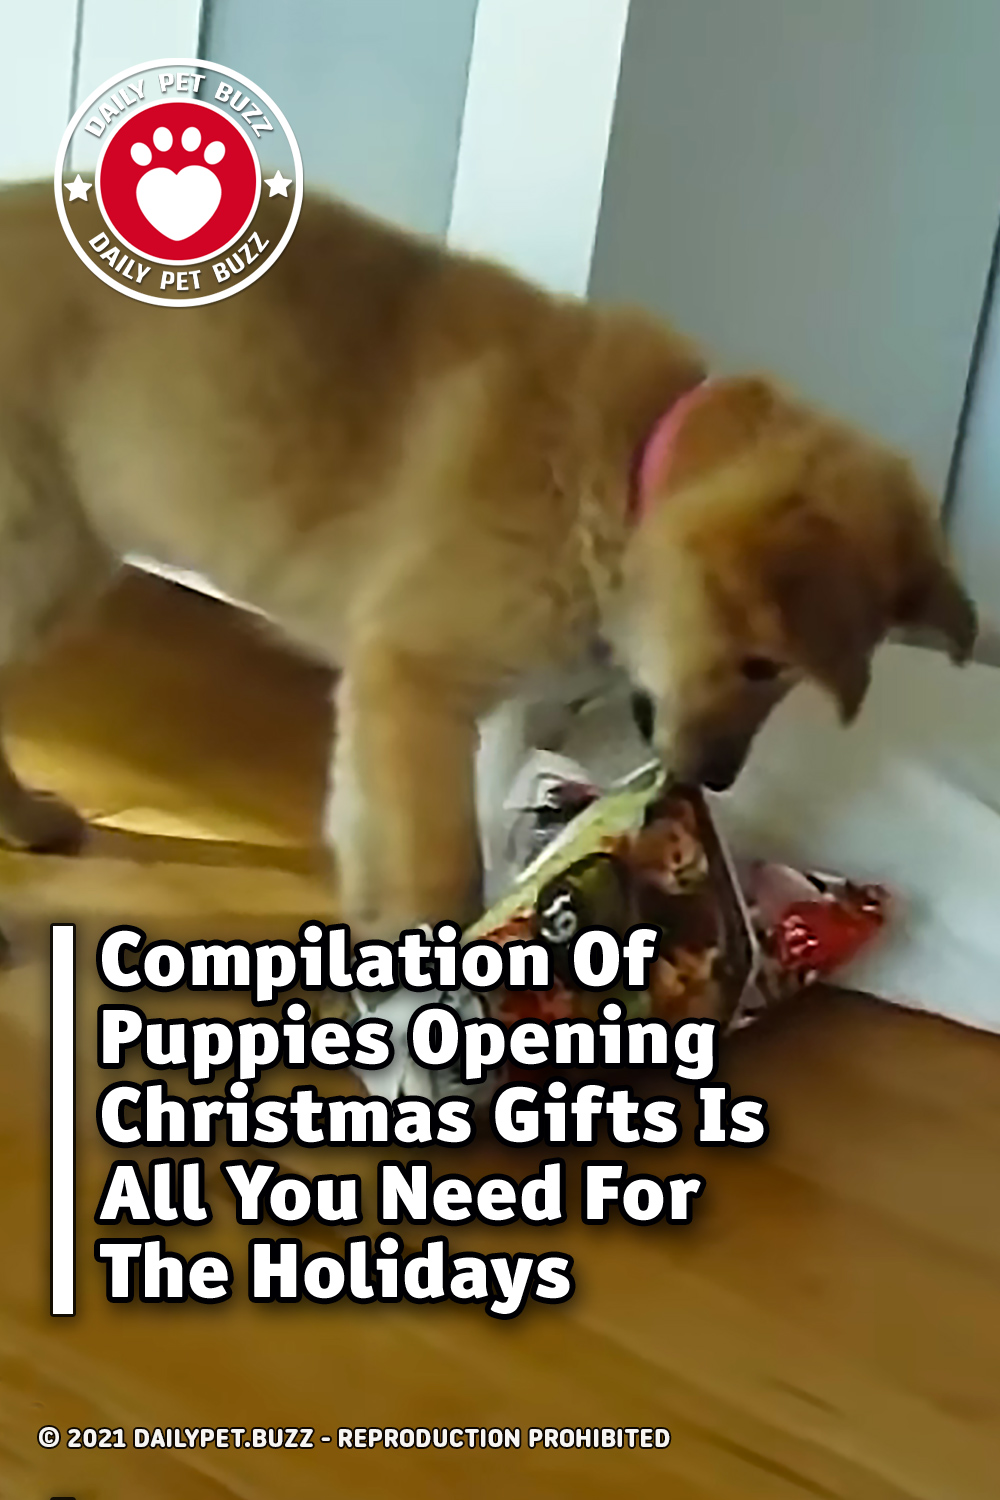 Compilation Of Puppies Opening Christmas Gifts Is All You Need For The Holidays